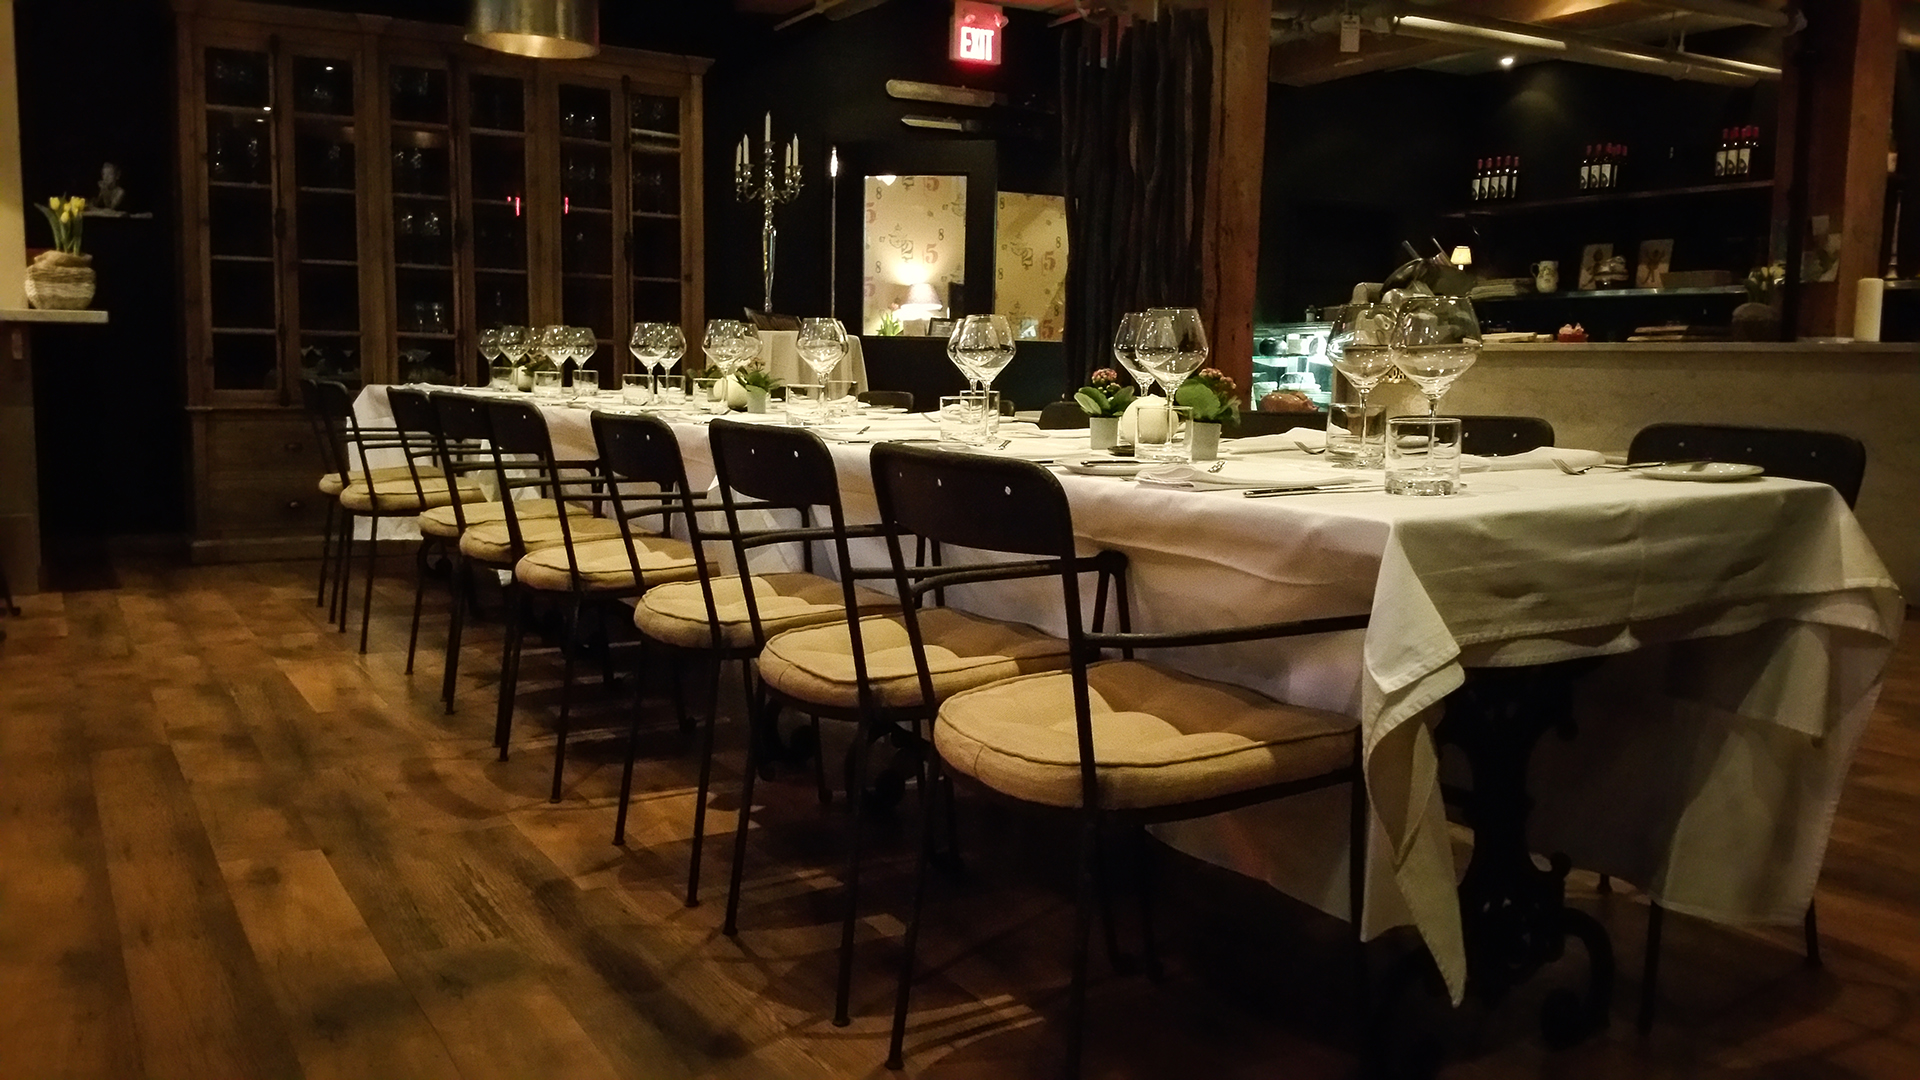 Small Wedding Venue Toronto - Intimate Wedding Reception